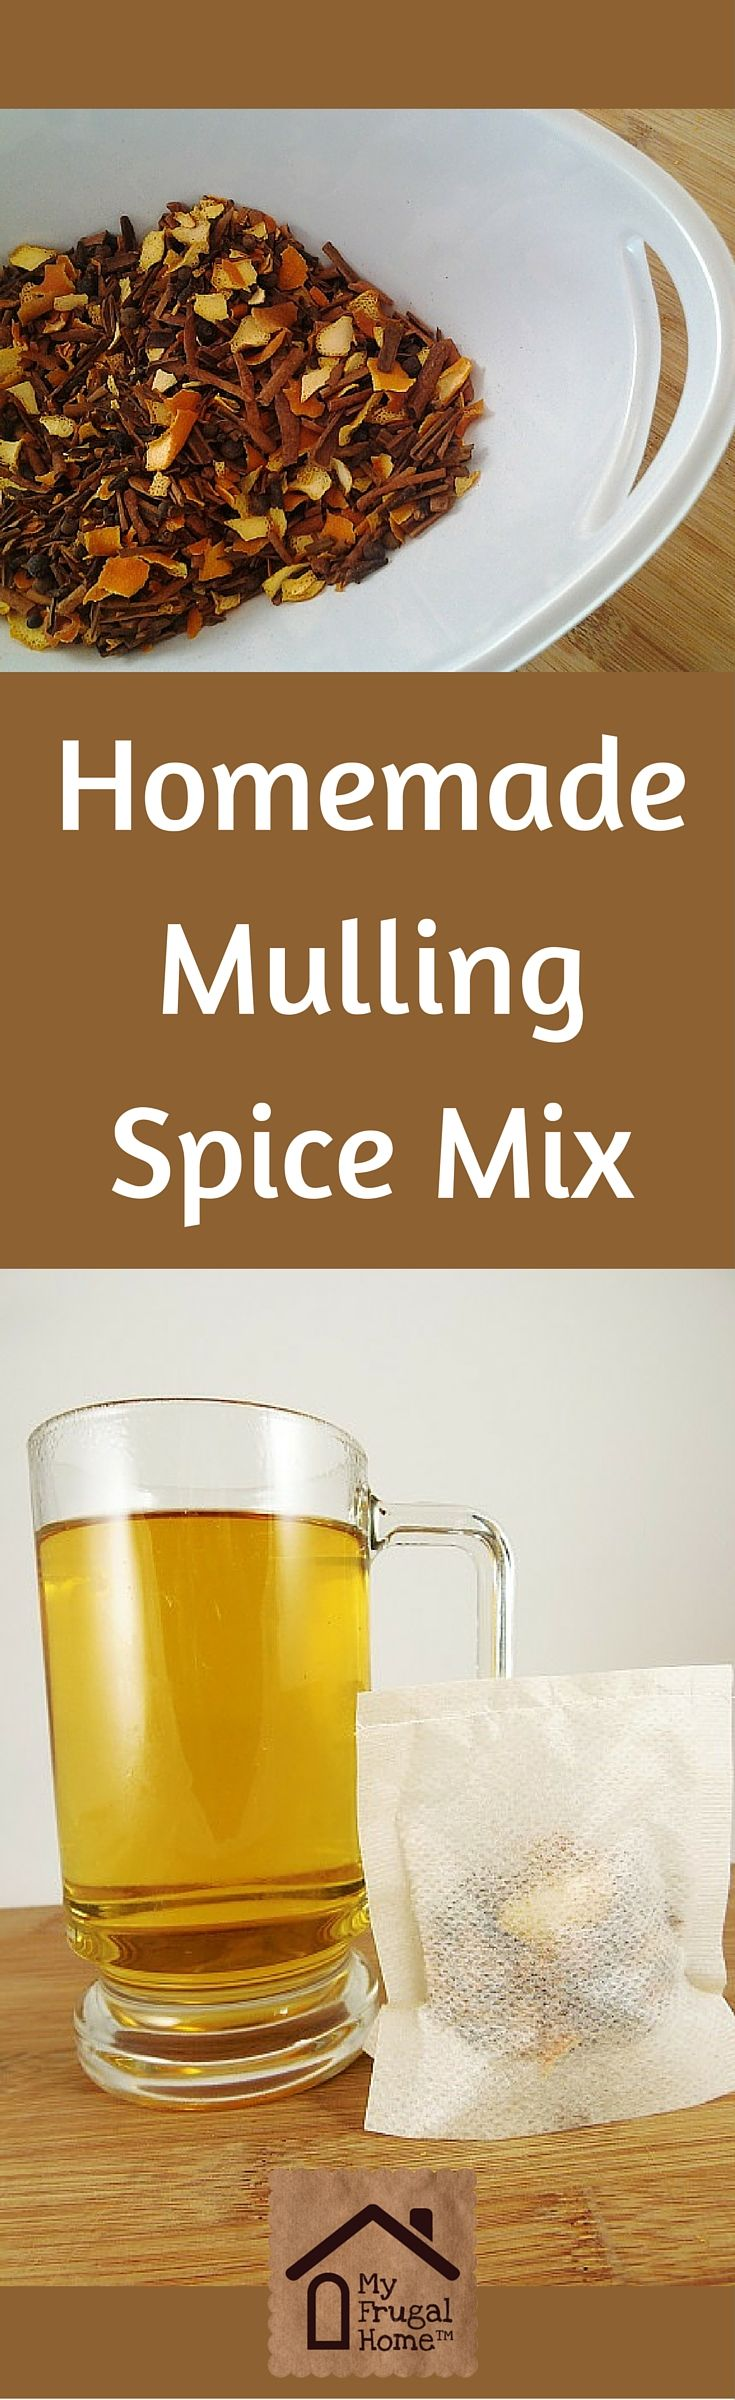 Homemade Mulling Spice Mix Recipe - packaged in neat little pouches that are perfect for gift-giving